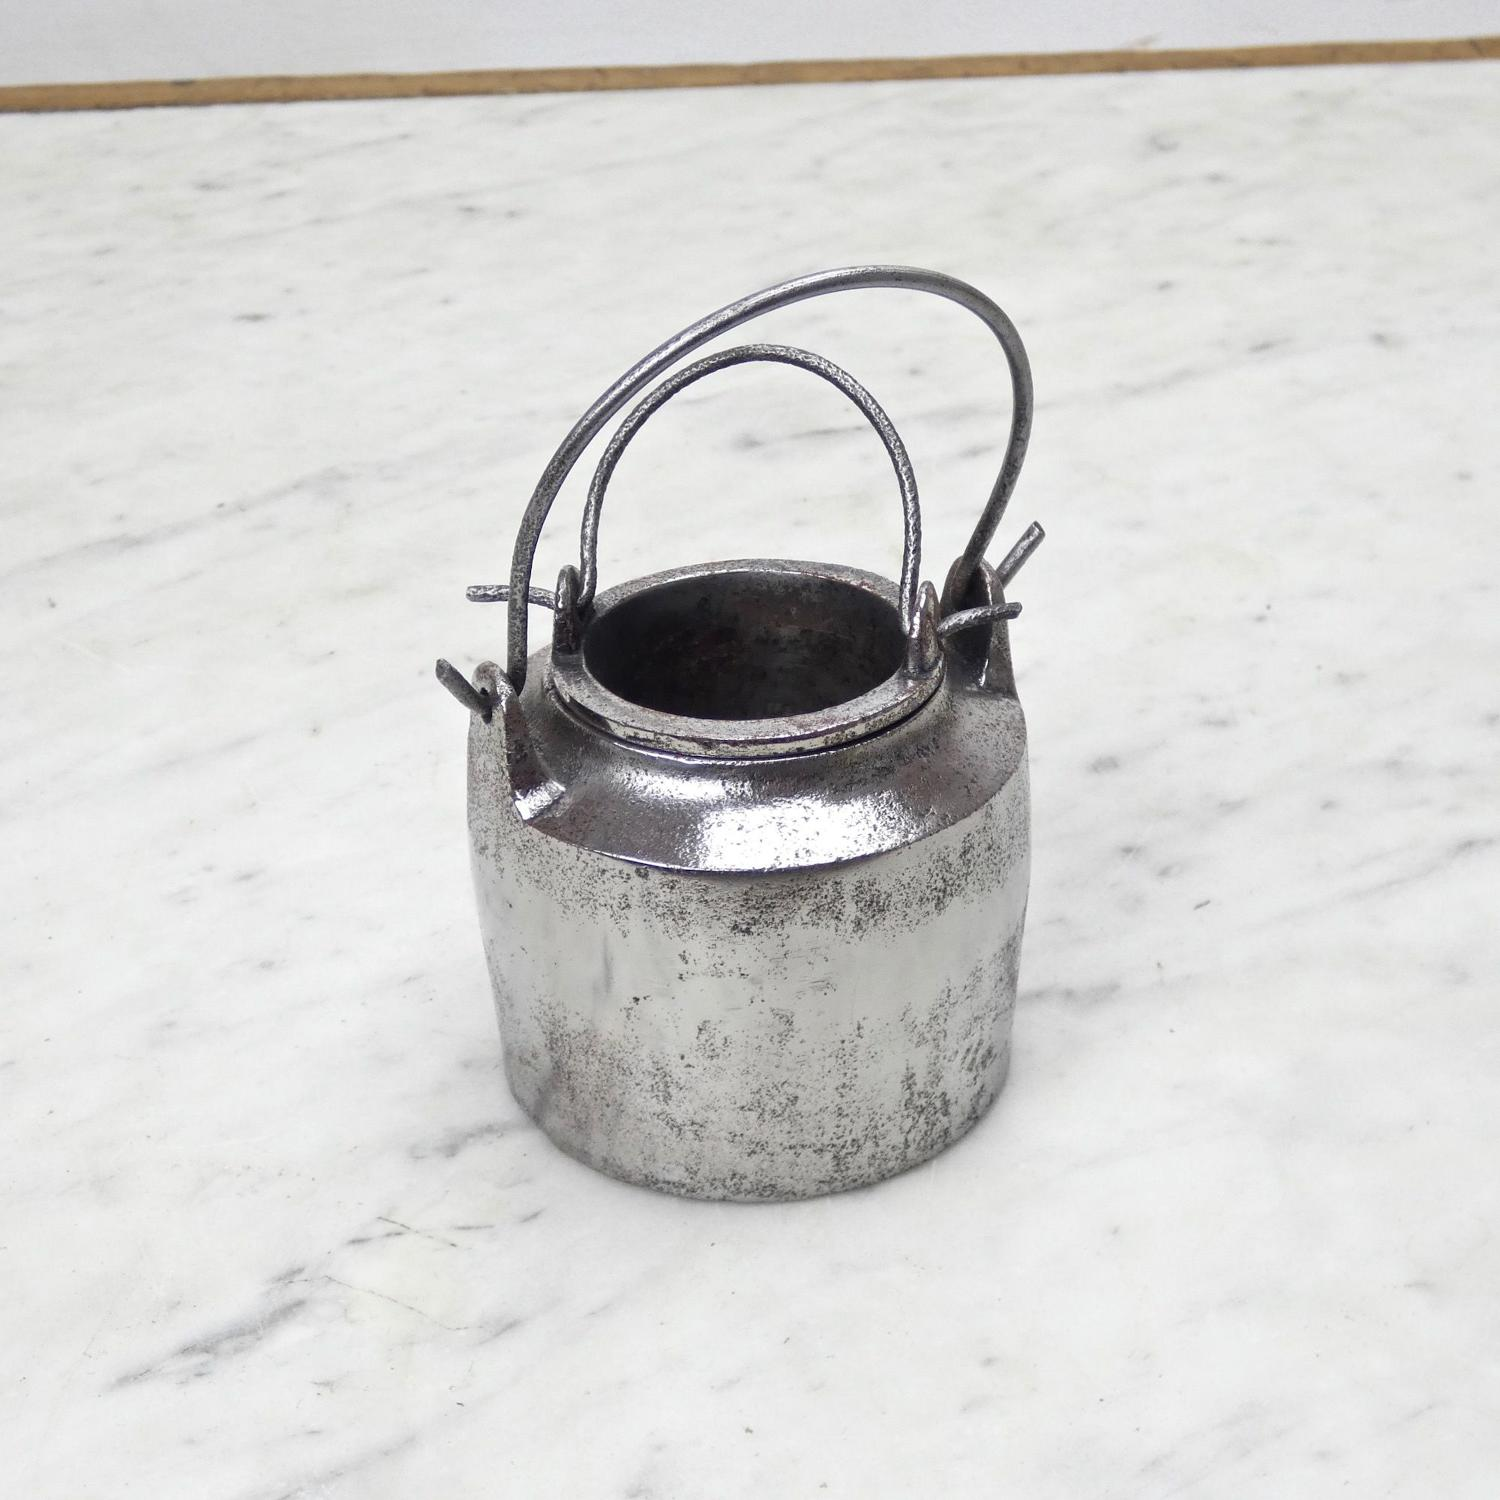 Very small, cast iron glue pot